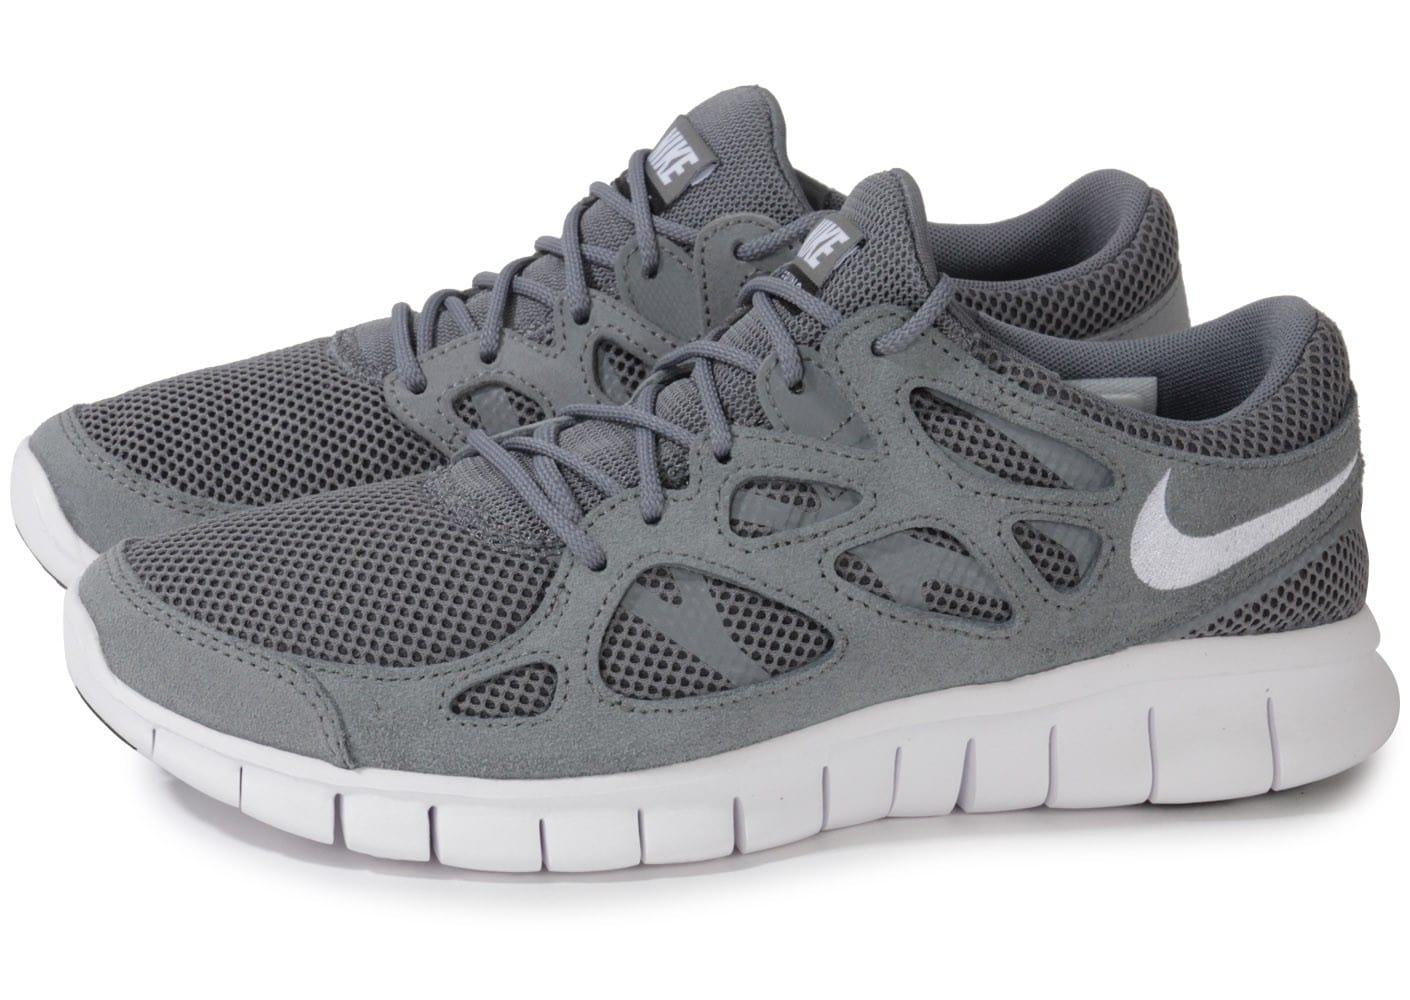 taille 40 24b91 bb67b Nike Free Run 2 Grise - Chaussures Baskets homme - Chausport